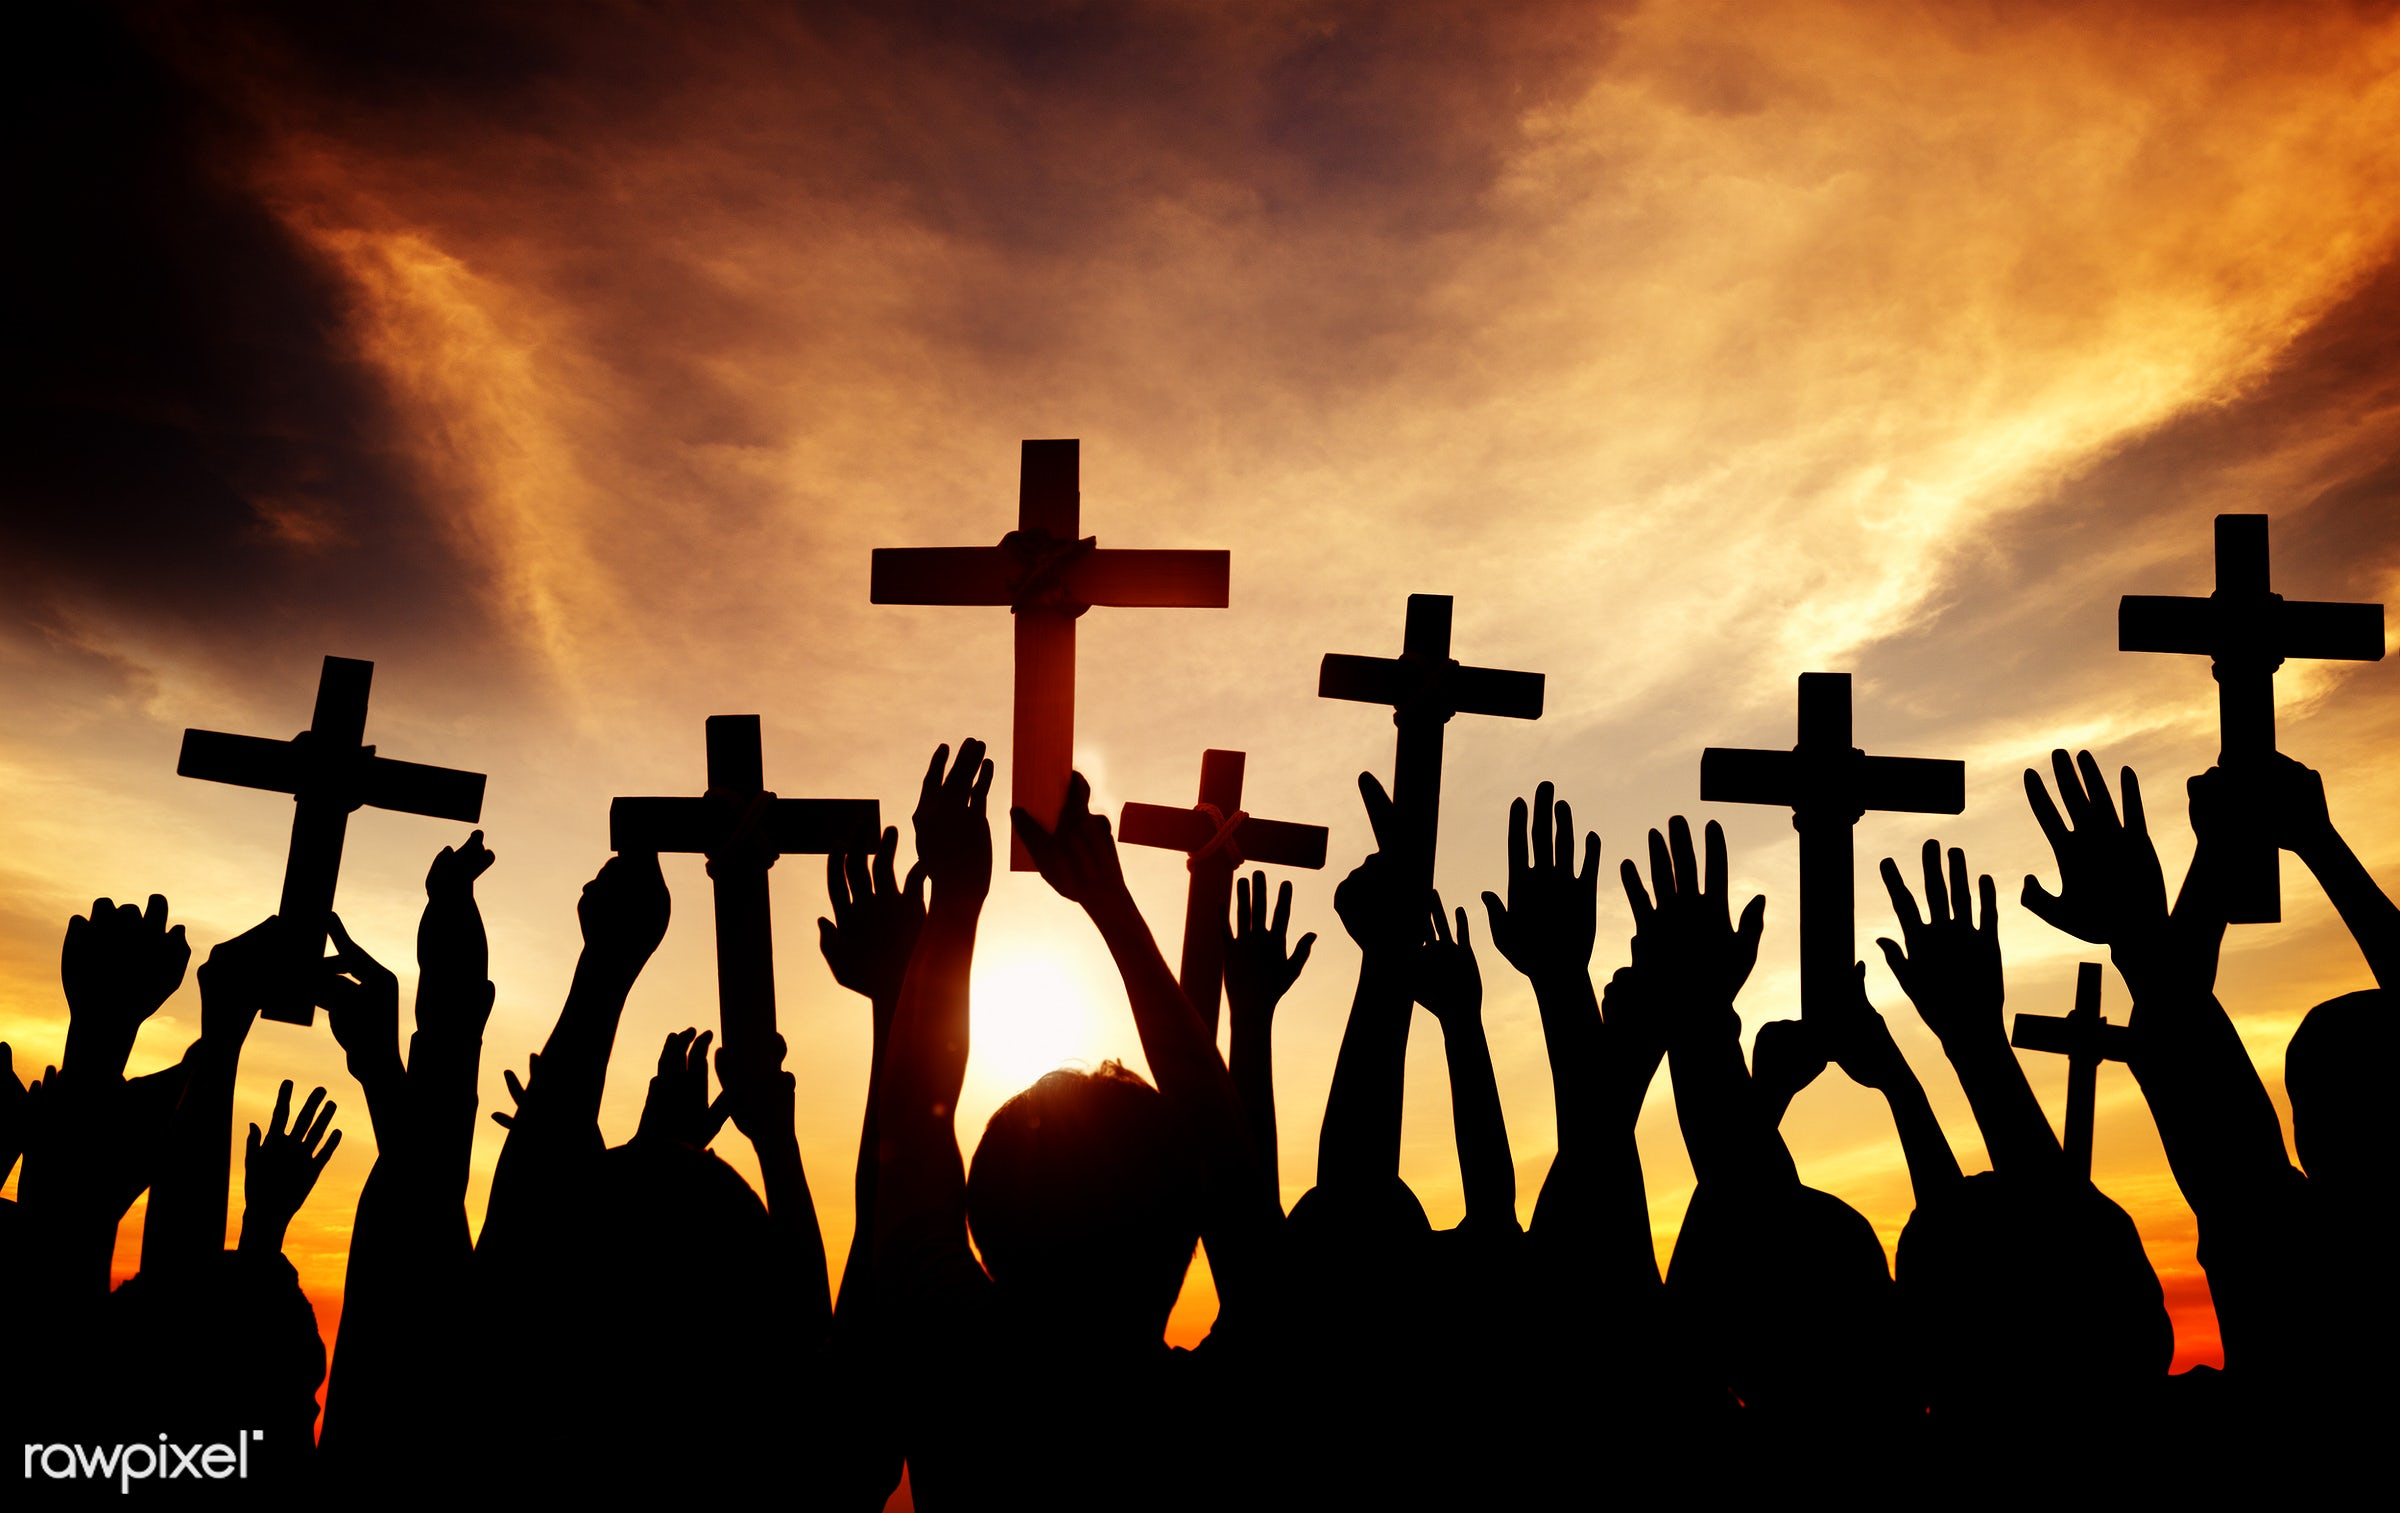 applauding, arms outstretched, arms raised, aspiration, back lit, believe, christian, christianity, church, cloud,...